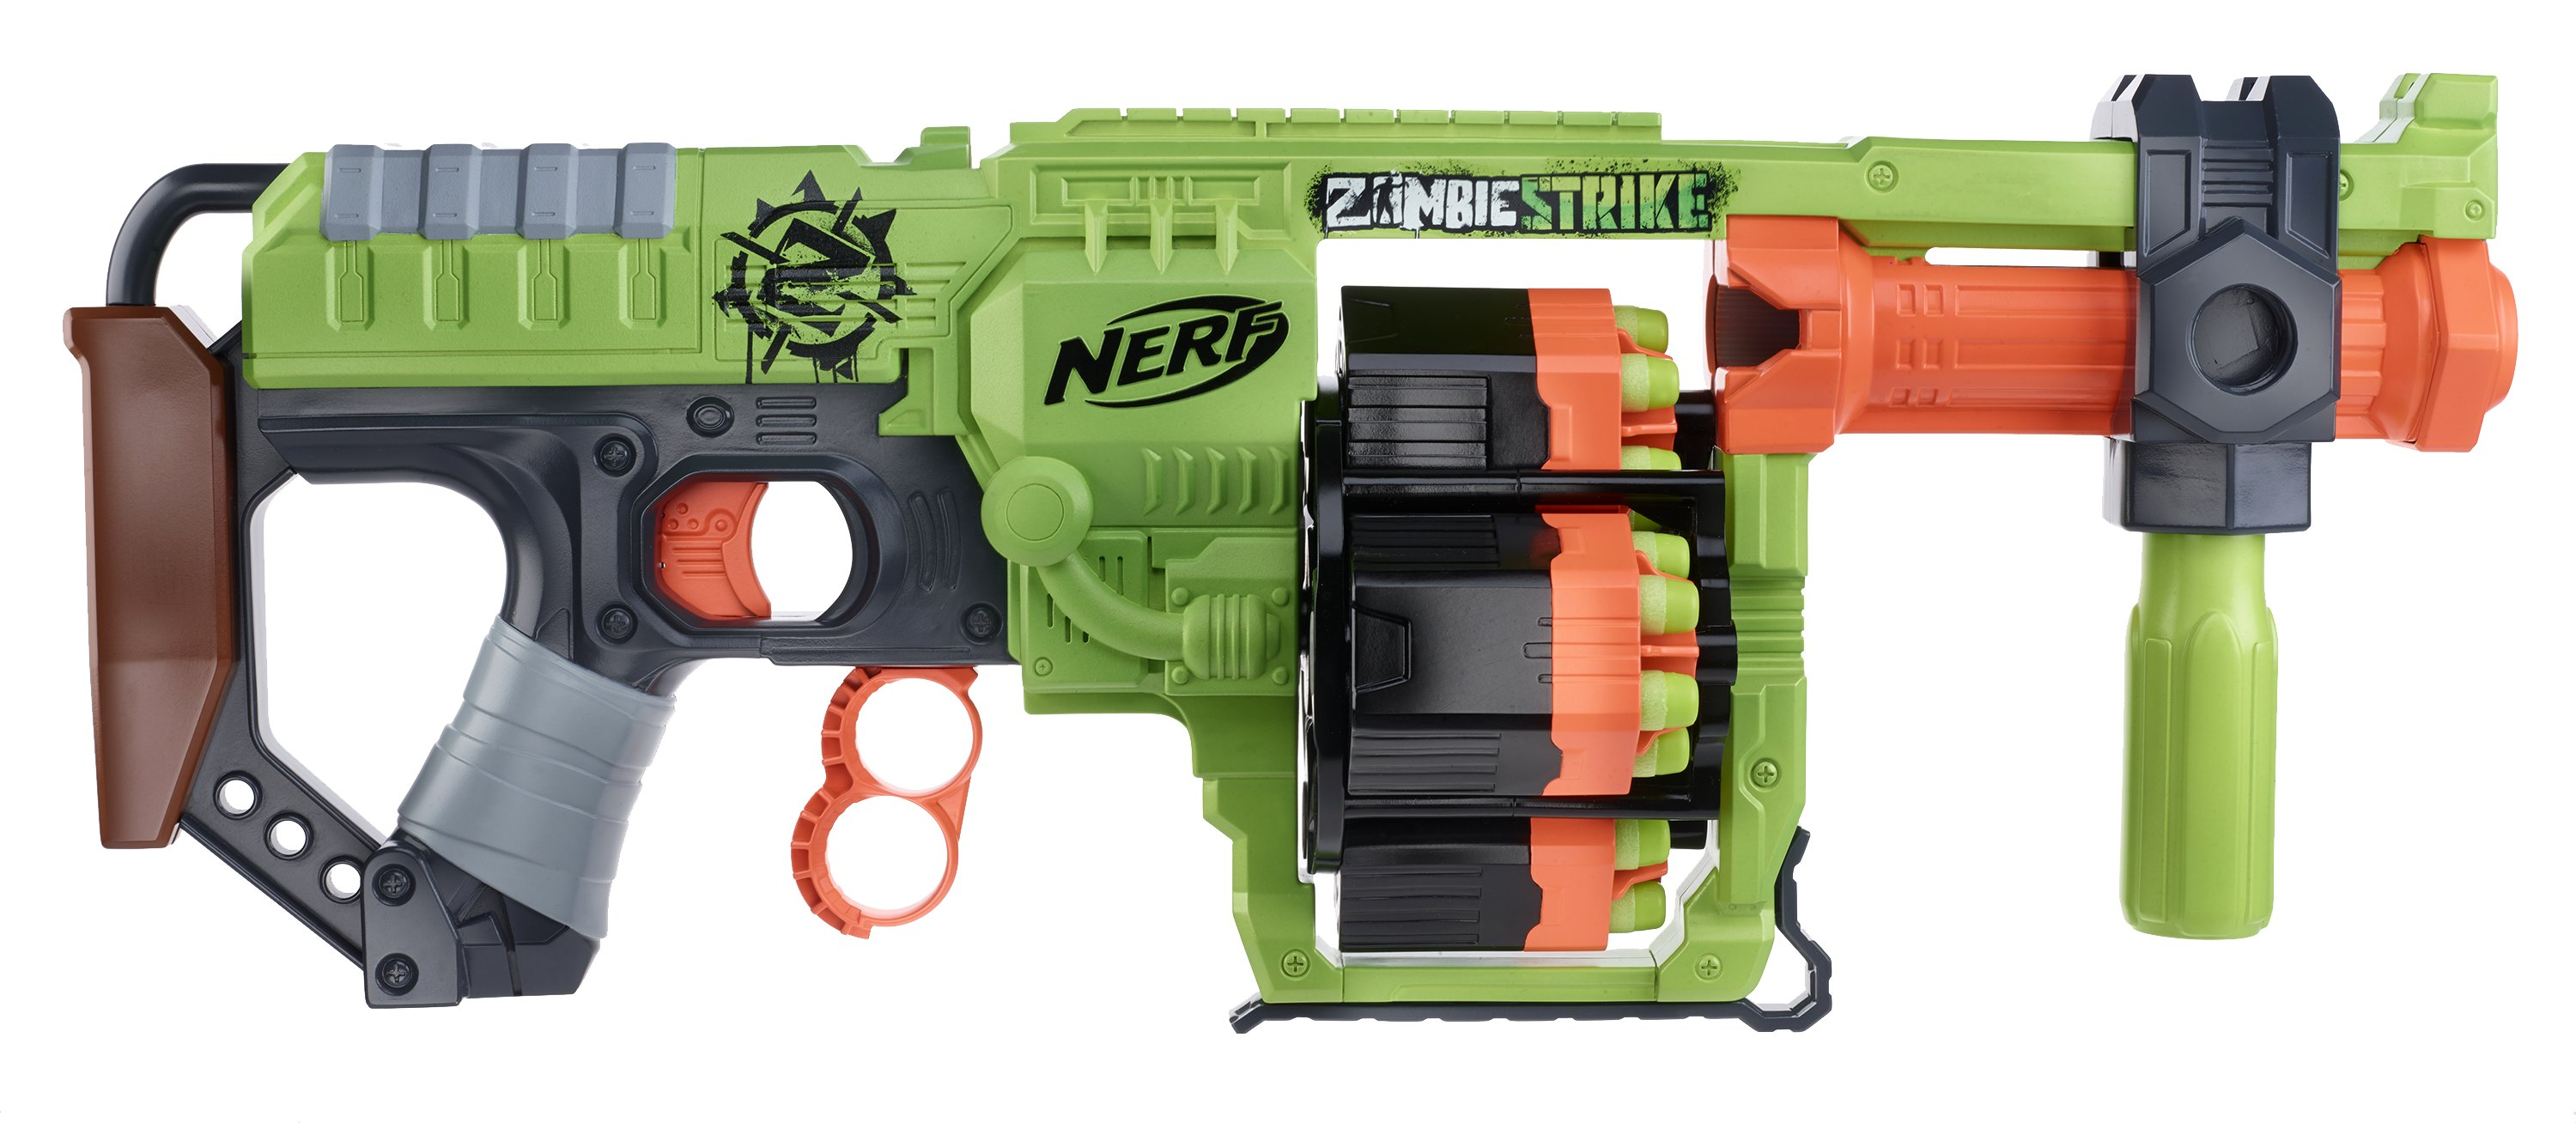 Nerf world now has new information on the upcoming Nerf Zombie Strike    Nerf Zombie Strike Release Date